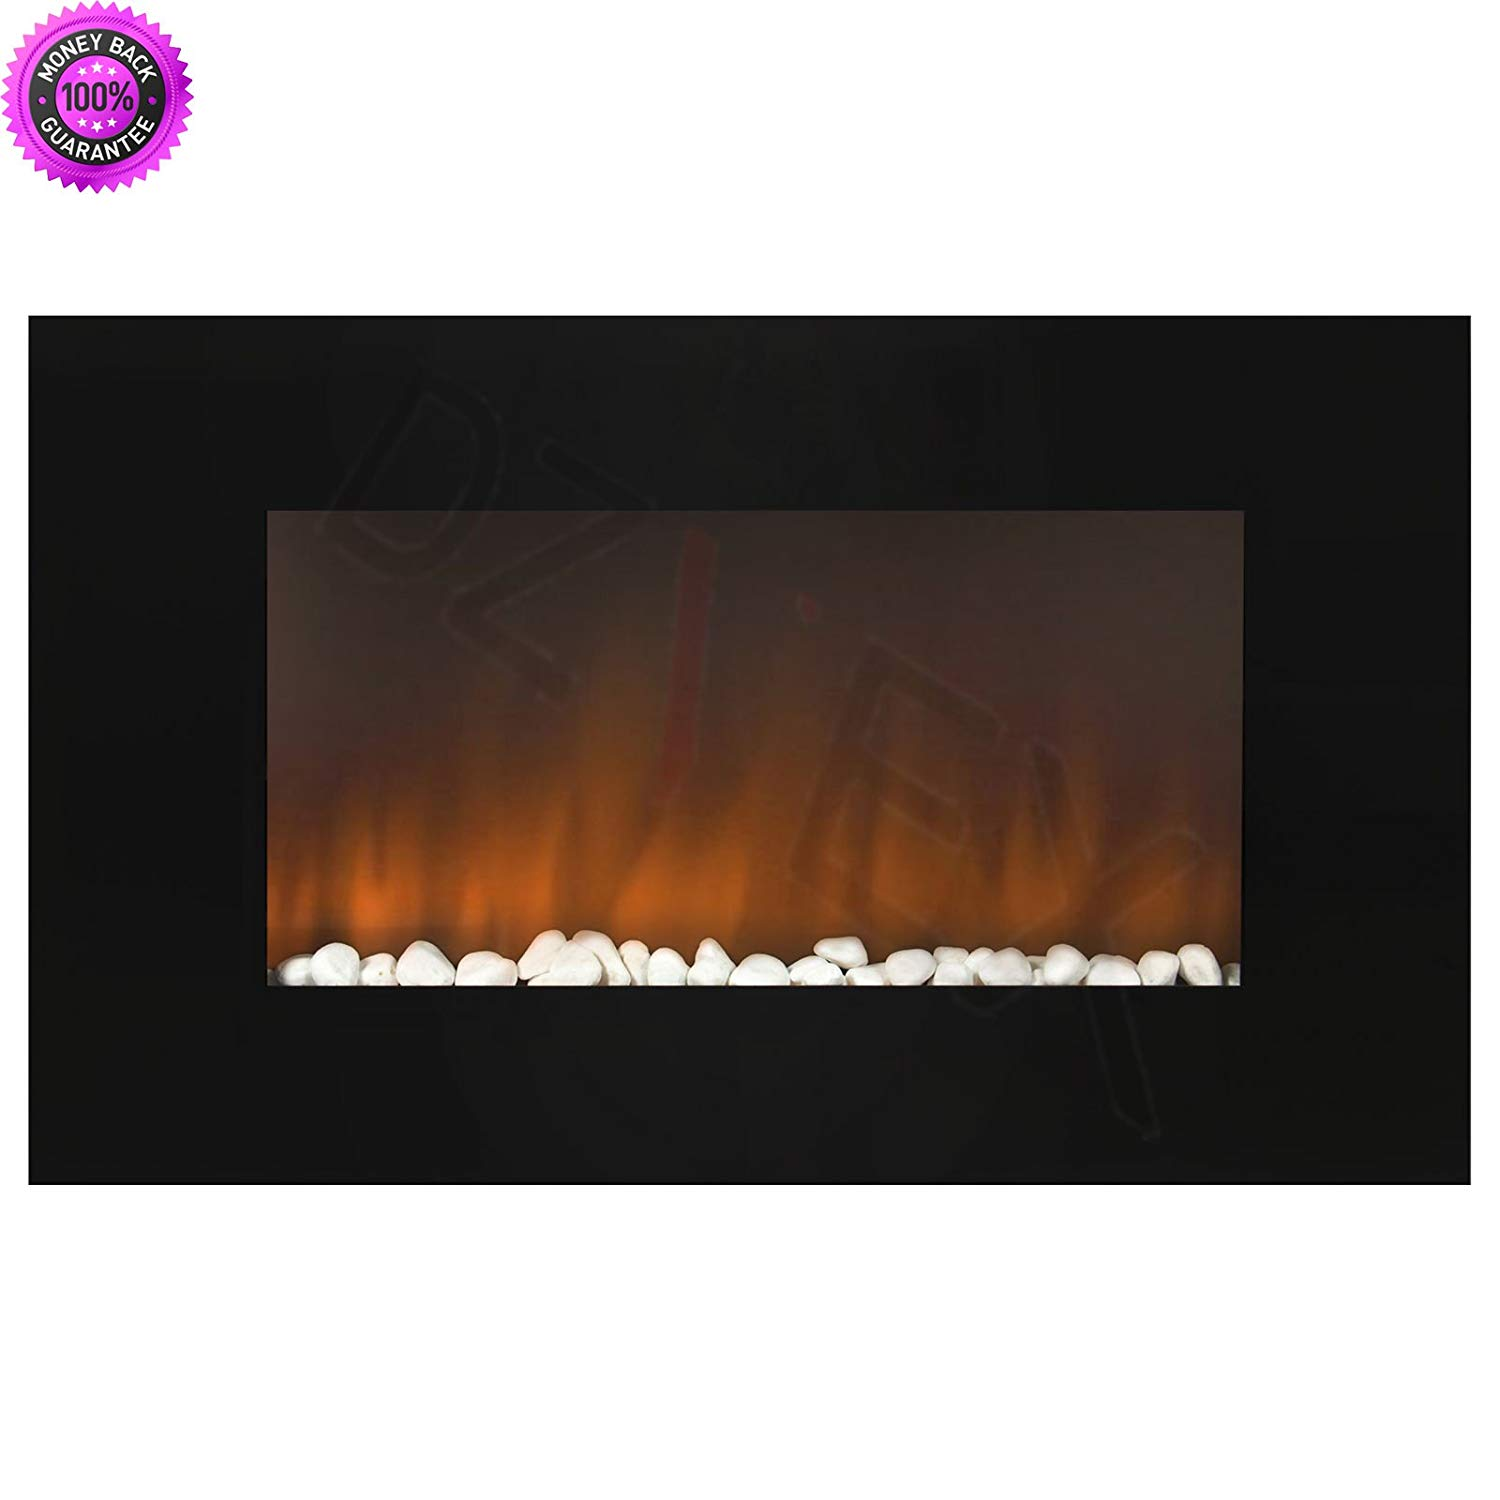 """DzVeX_1500W Heat Adjustable 36"""" Wall Mount Electric Fireplace MultiColor LED Backlight And wood burning fireplaces electric fireplaces clearance home depot home depot fireplaces off gas fireplac"""